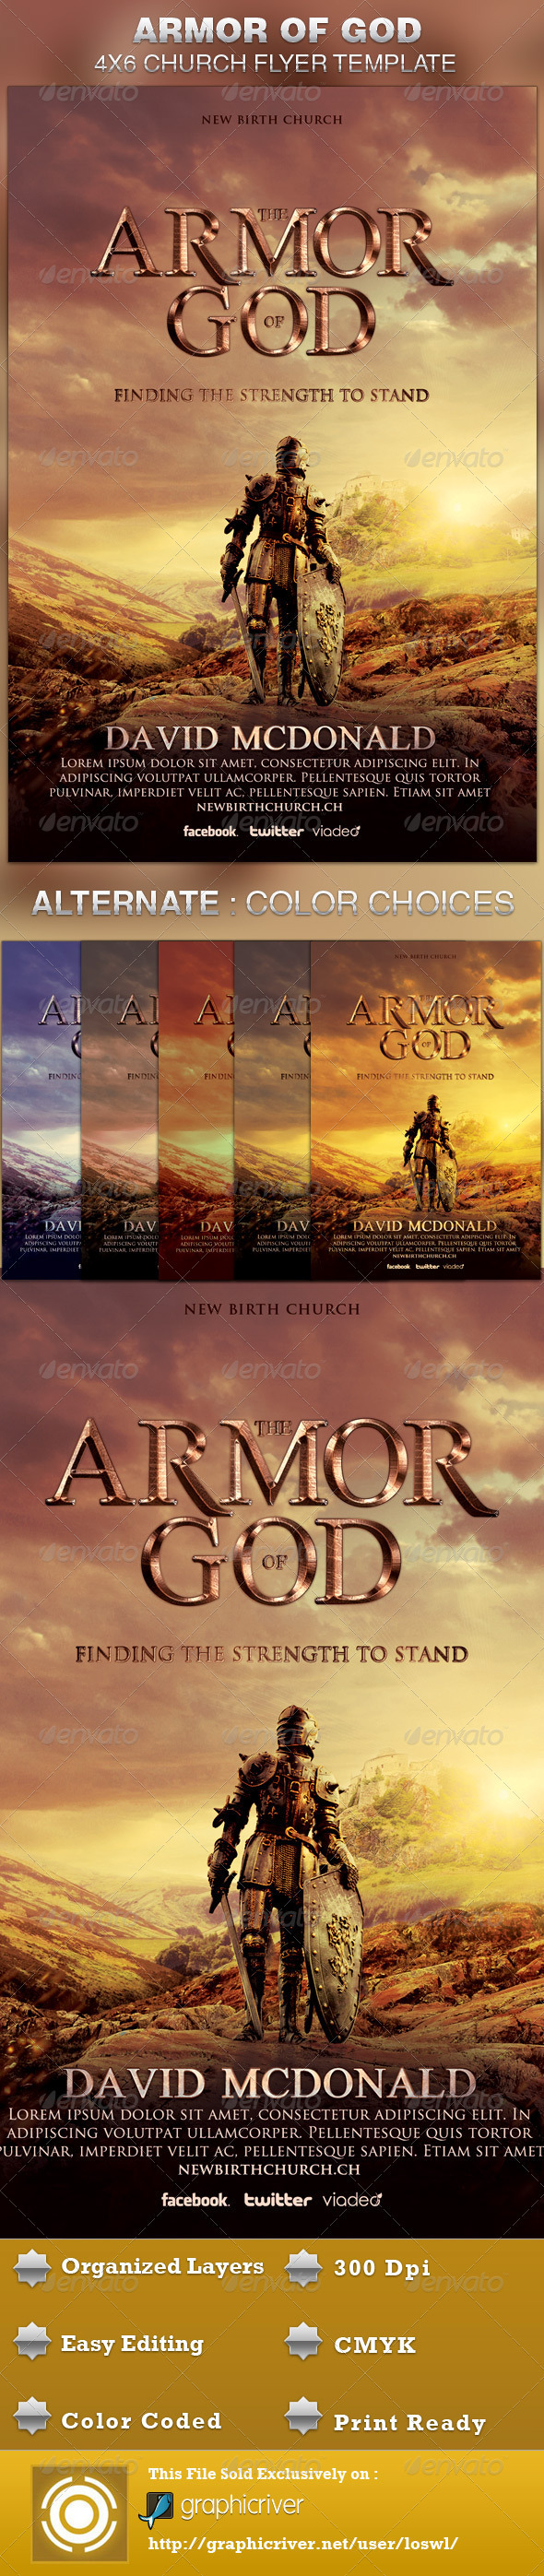 armor of god church flyer template on behance